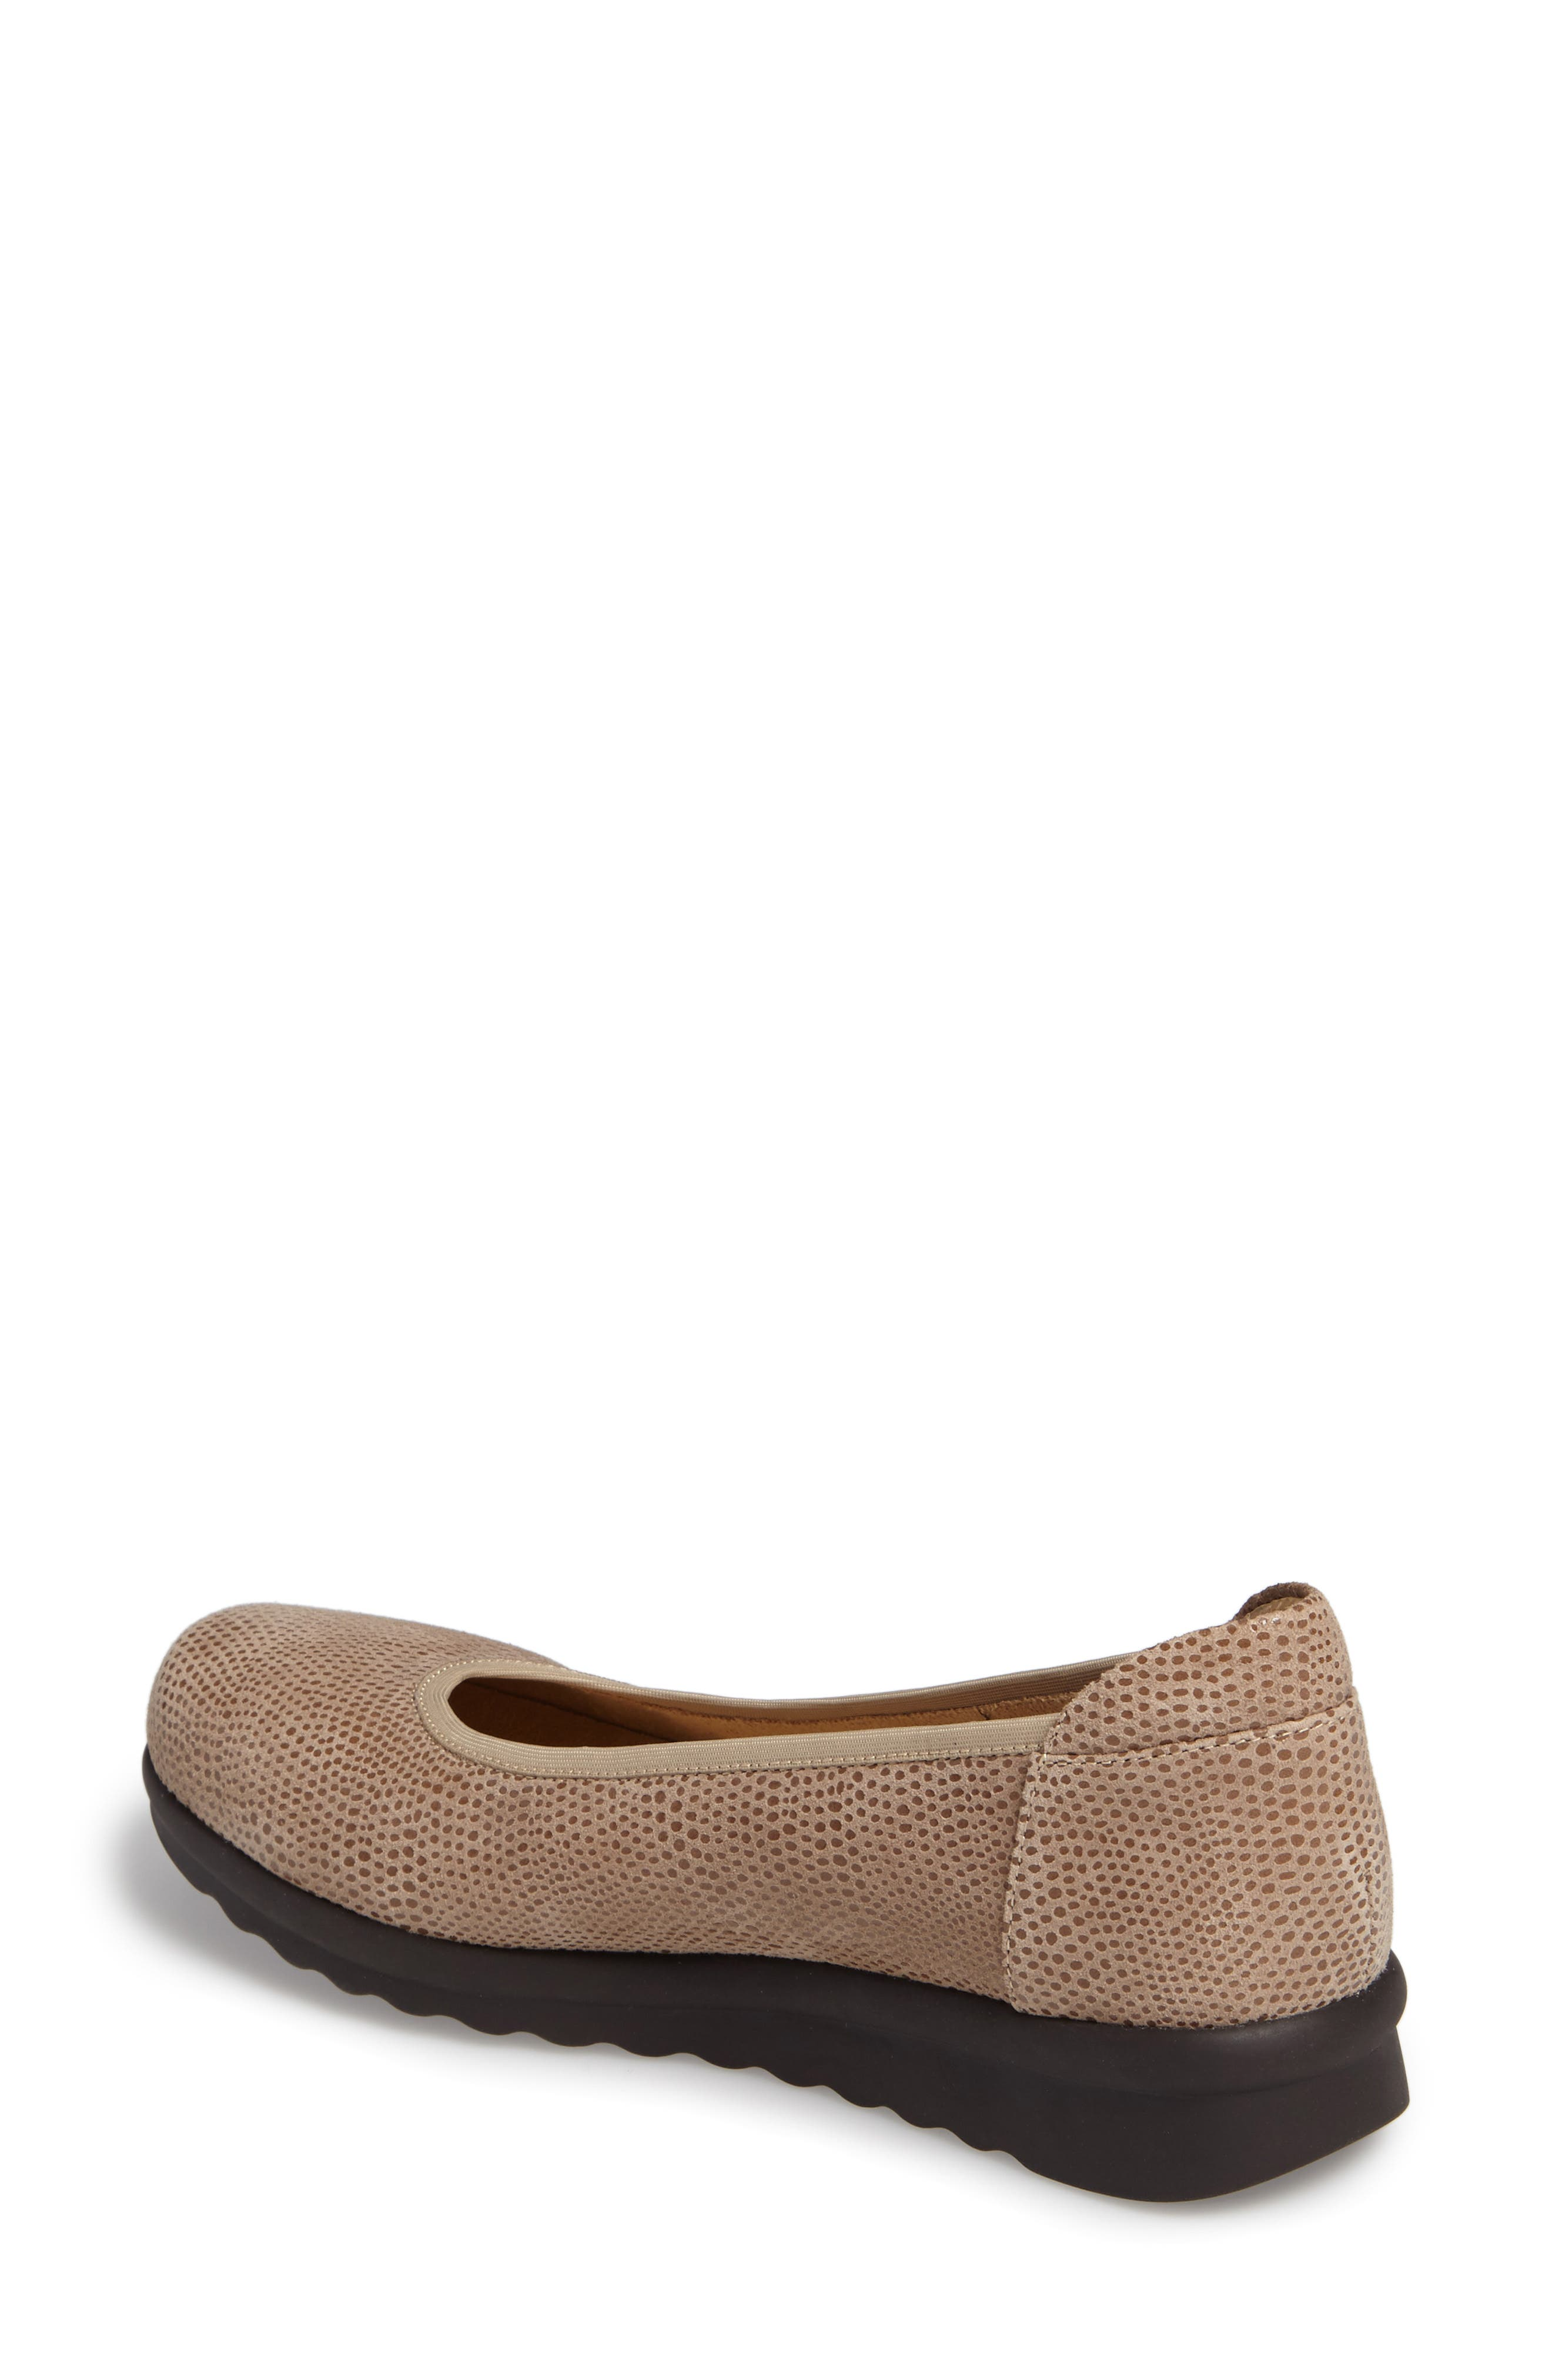 Donia Flat,                             Alternate thumbnail 2, color,                             Taupe Print Fabric